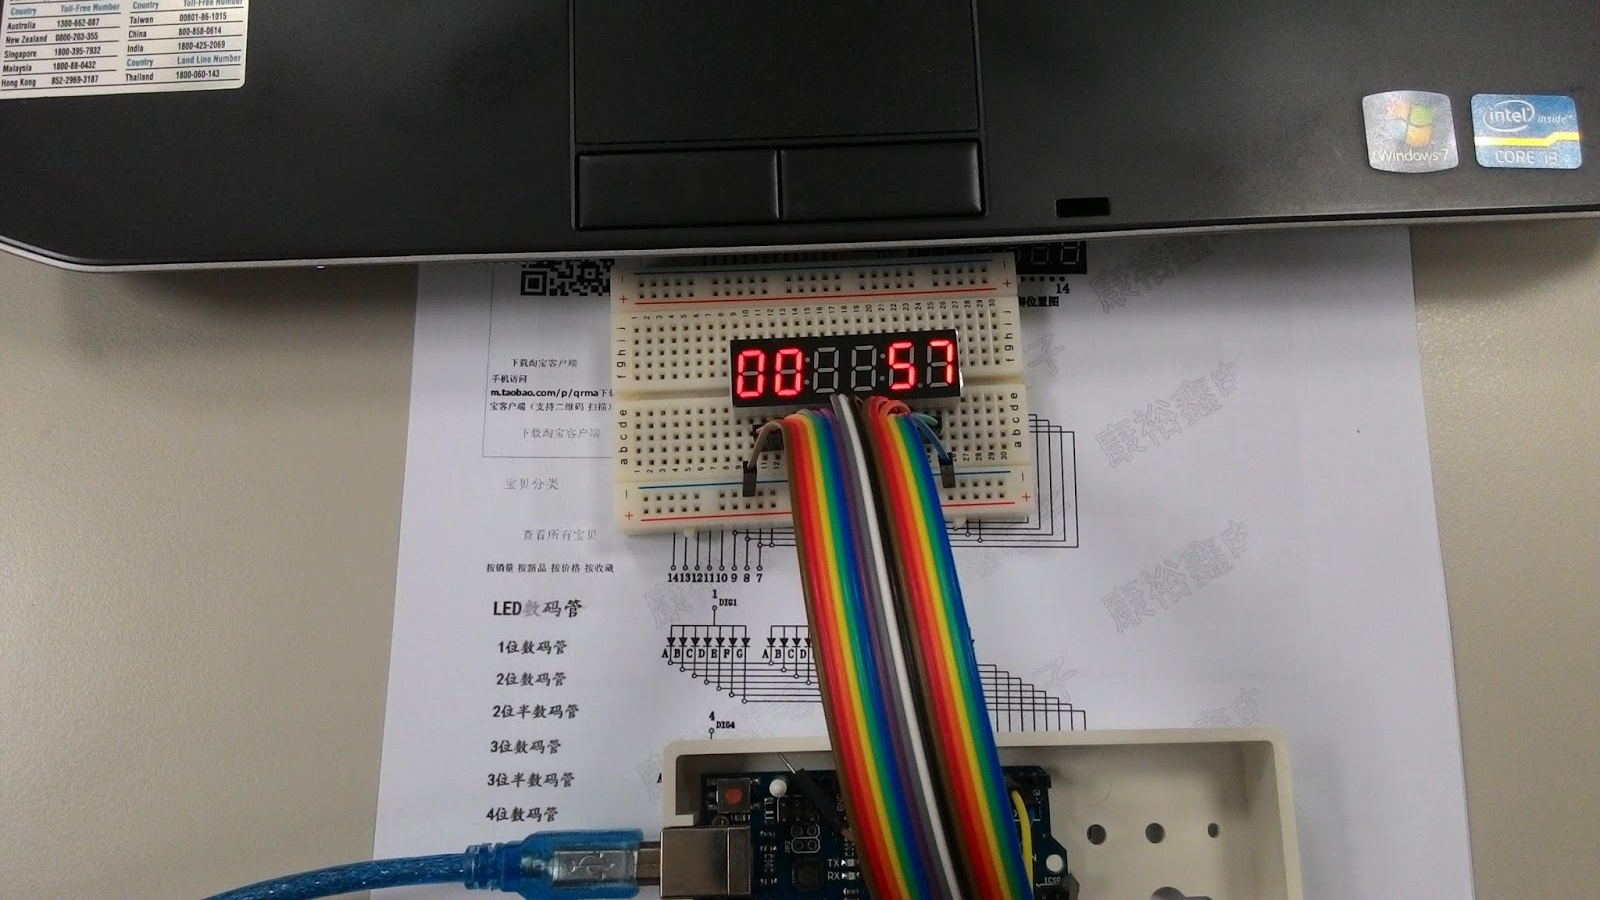 Cheaphousetek 6 Digit 7 Segment Led Counter Display Seven System Photos Parts Arduino Uno R3